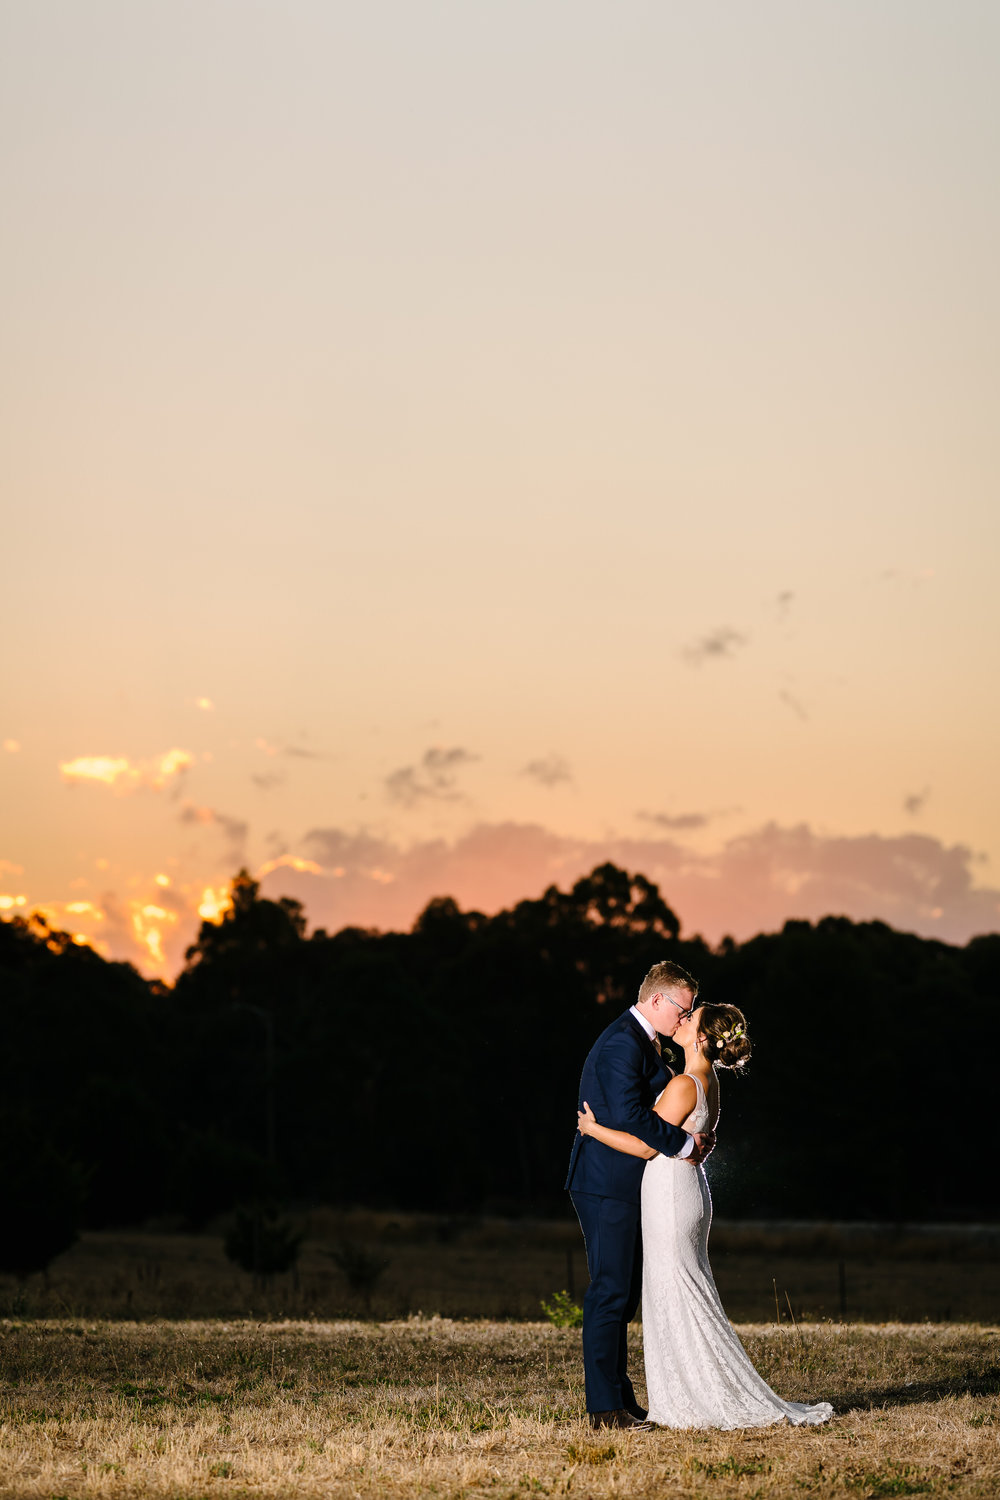 Justin_And_Jim_Photography_Chateau_Dore_Bendigo_Wedding78.JPG